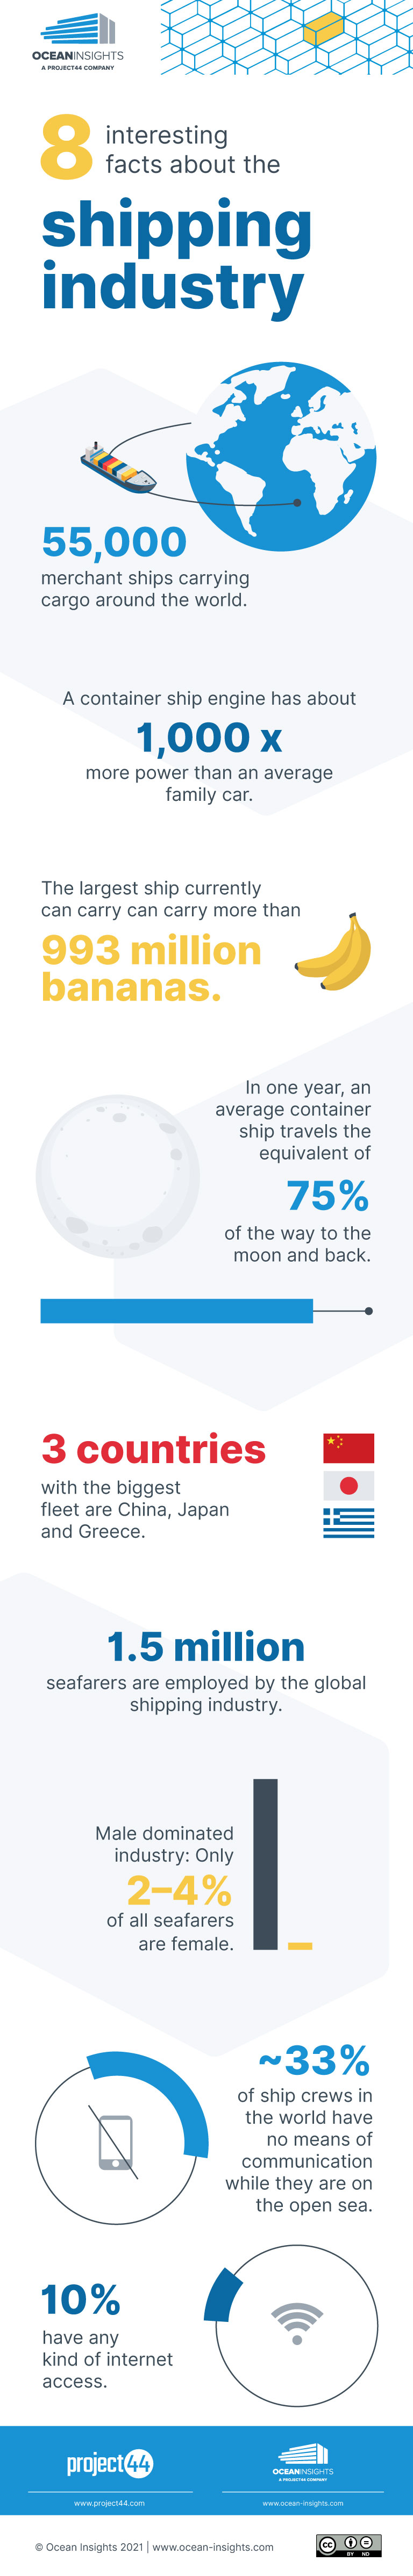 infographic shipping industry